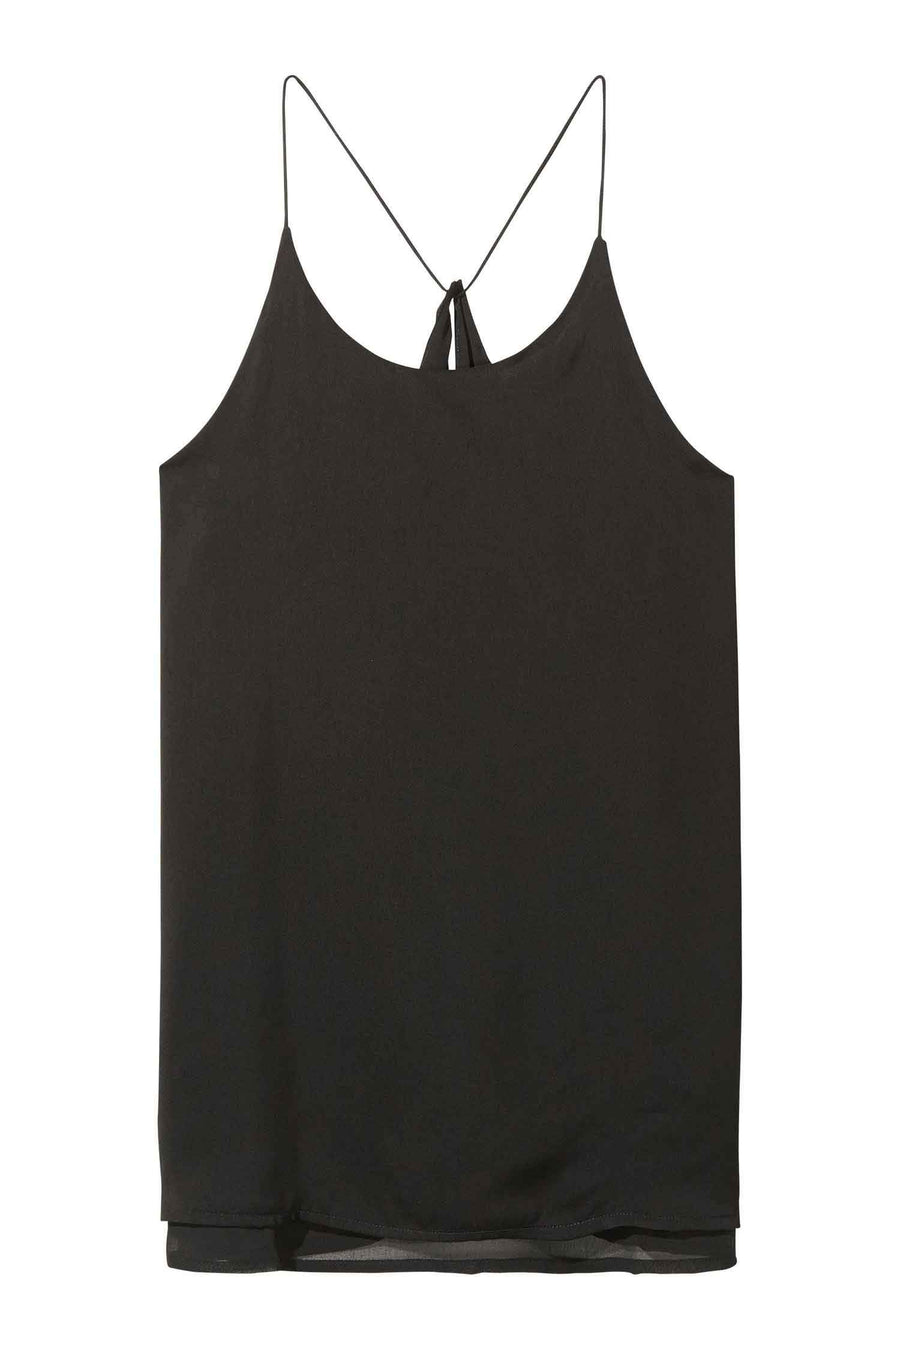 Double Layered Tank Top in Black by Maison Scotch Frockaholics.com